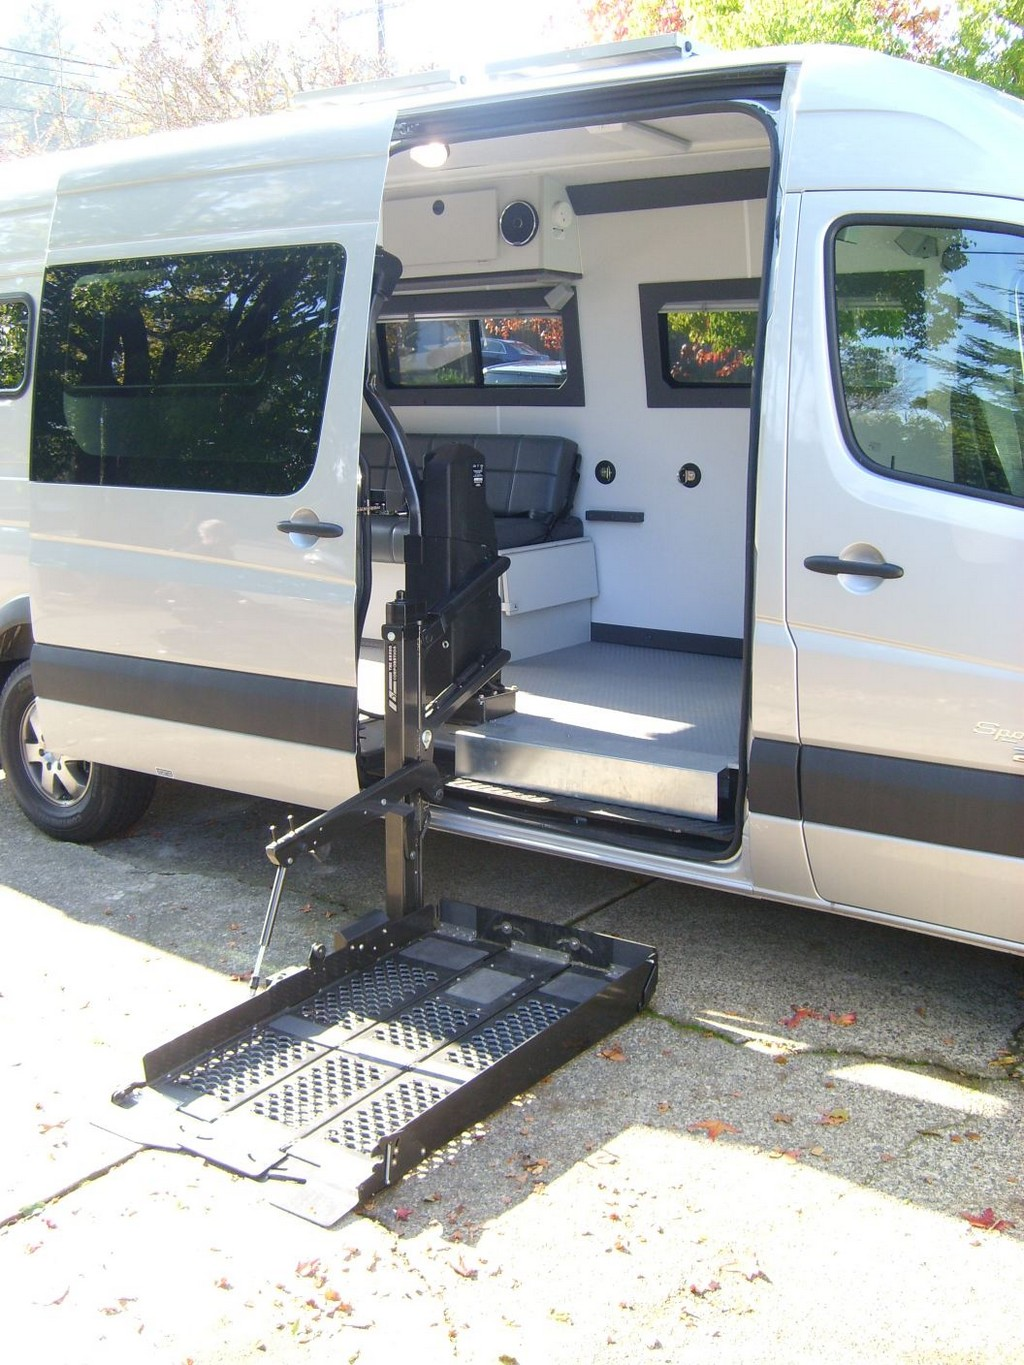 donated wheelchair lifts, braun wheelchair lifts for vans, bruno wheelchair lifts, jazzy wheelchair lift